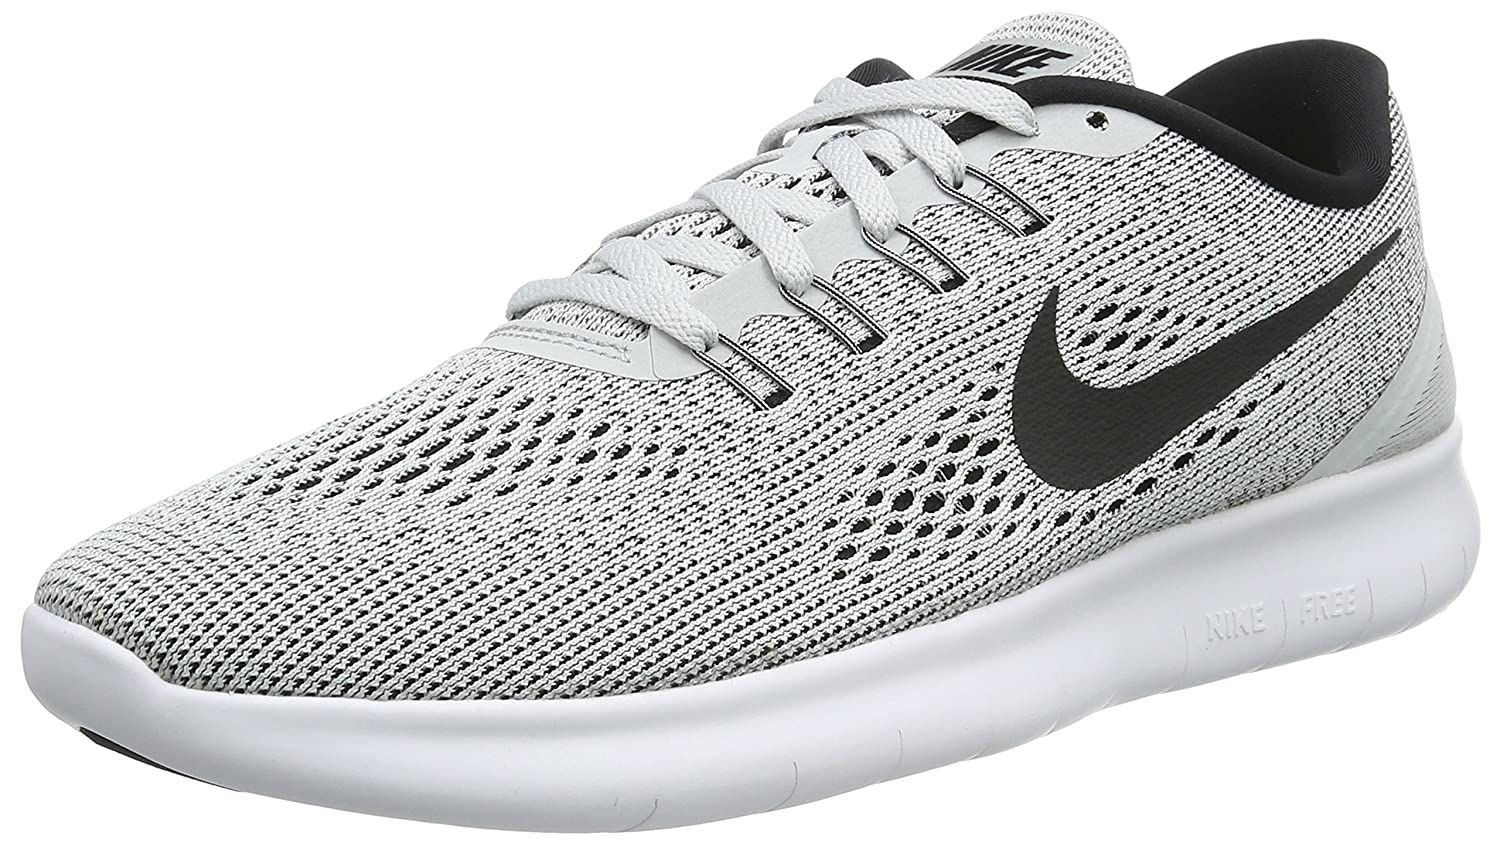 NIKE Men's Free RN Running Shoe B0147SNT0I 11.5 D(M) US|White/Pure Platinum/Black